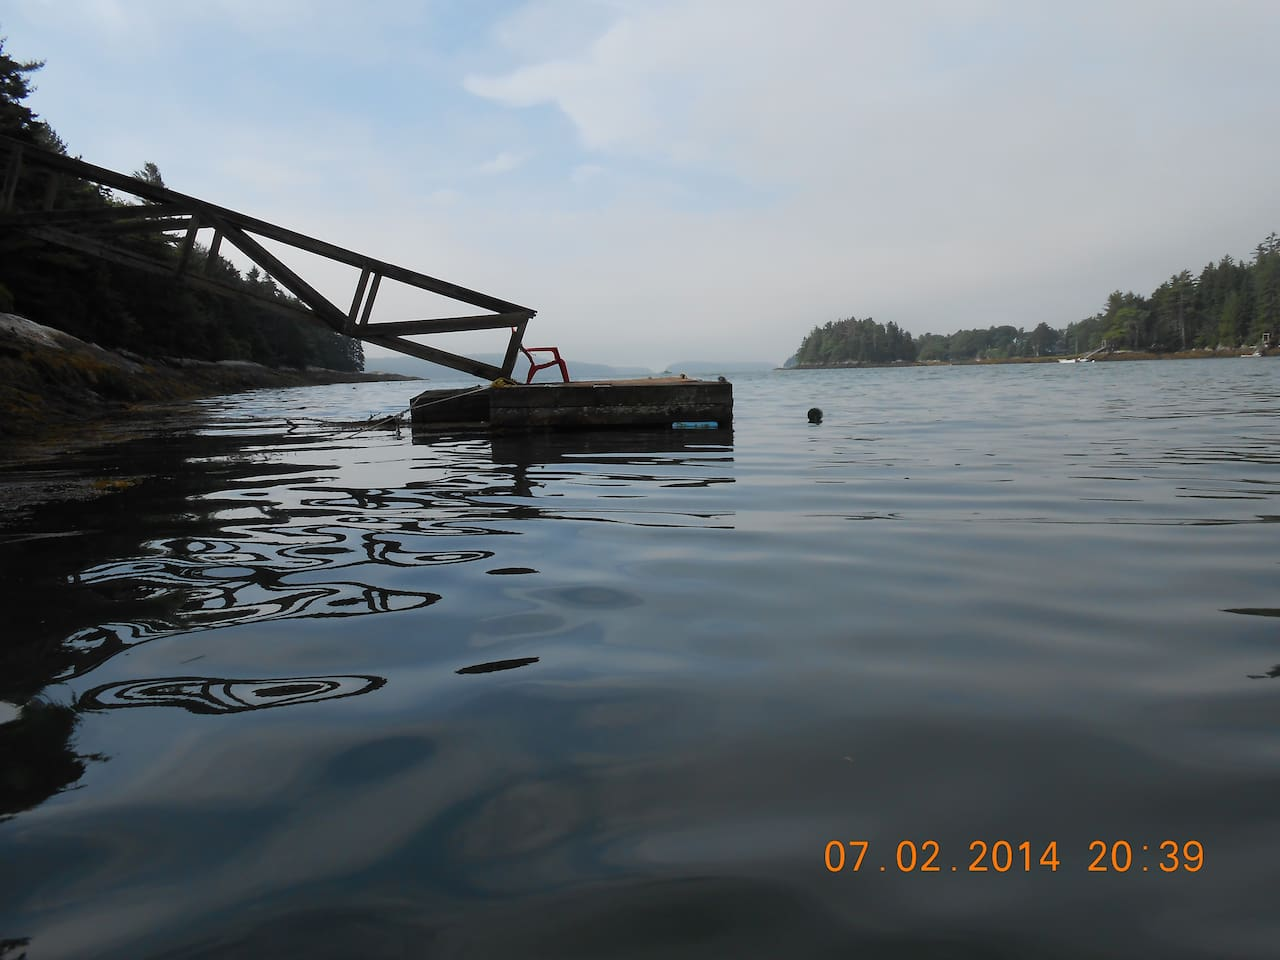 Our dock, with a view south, toward Malaga and Bear islands at the mouth of the New Meadows embayment